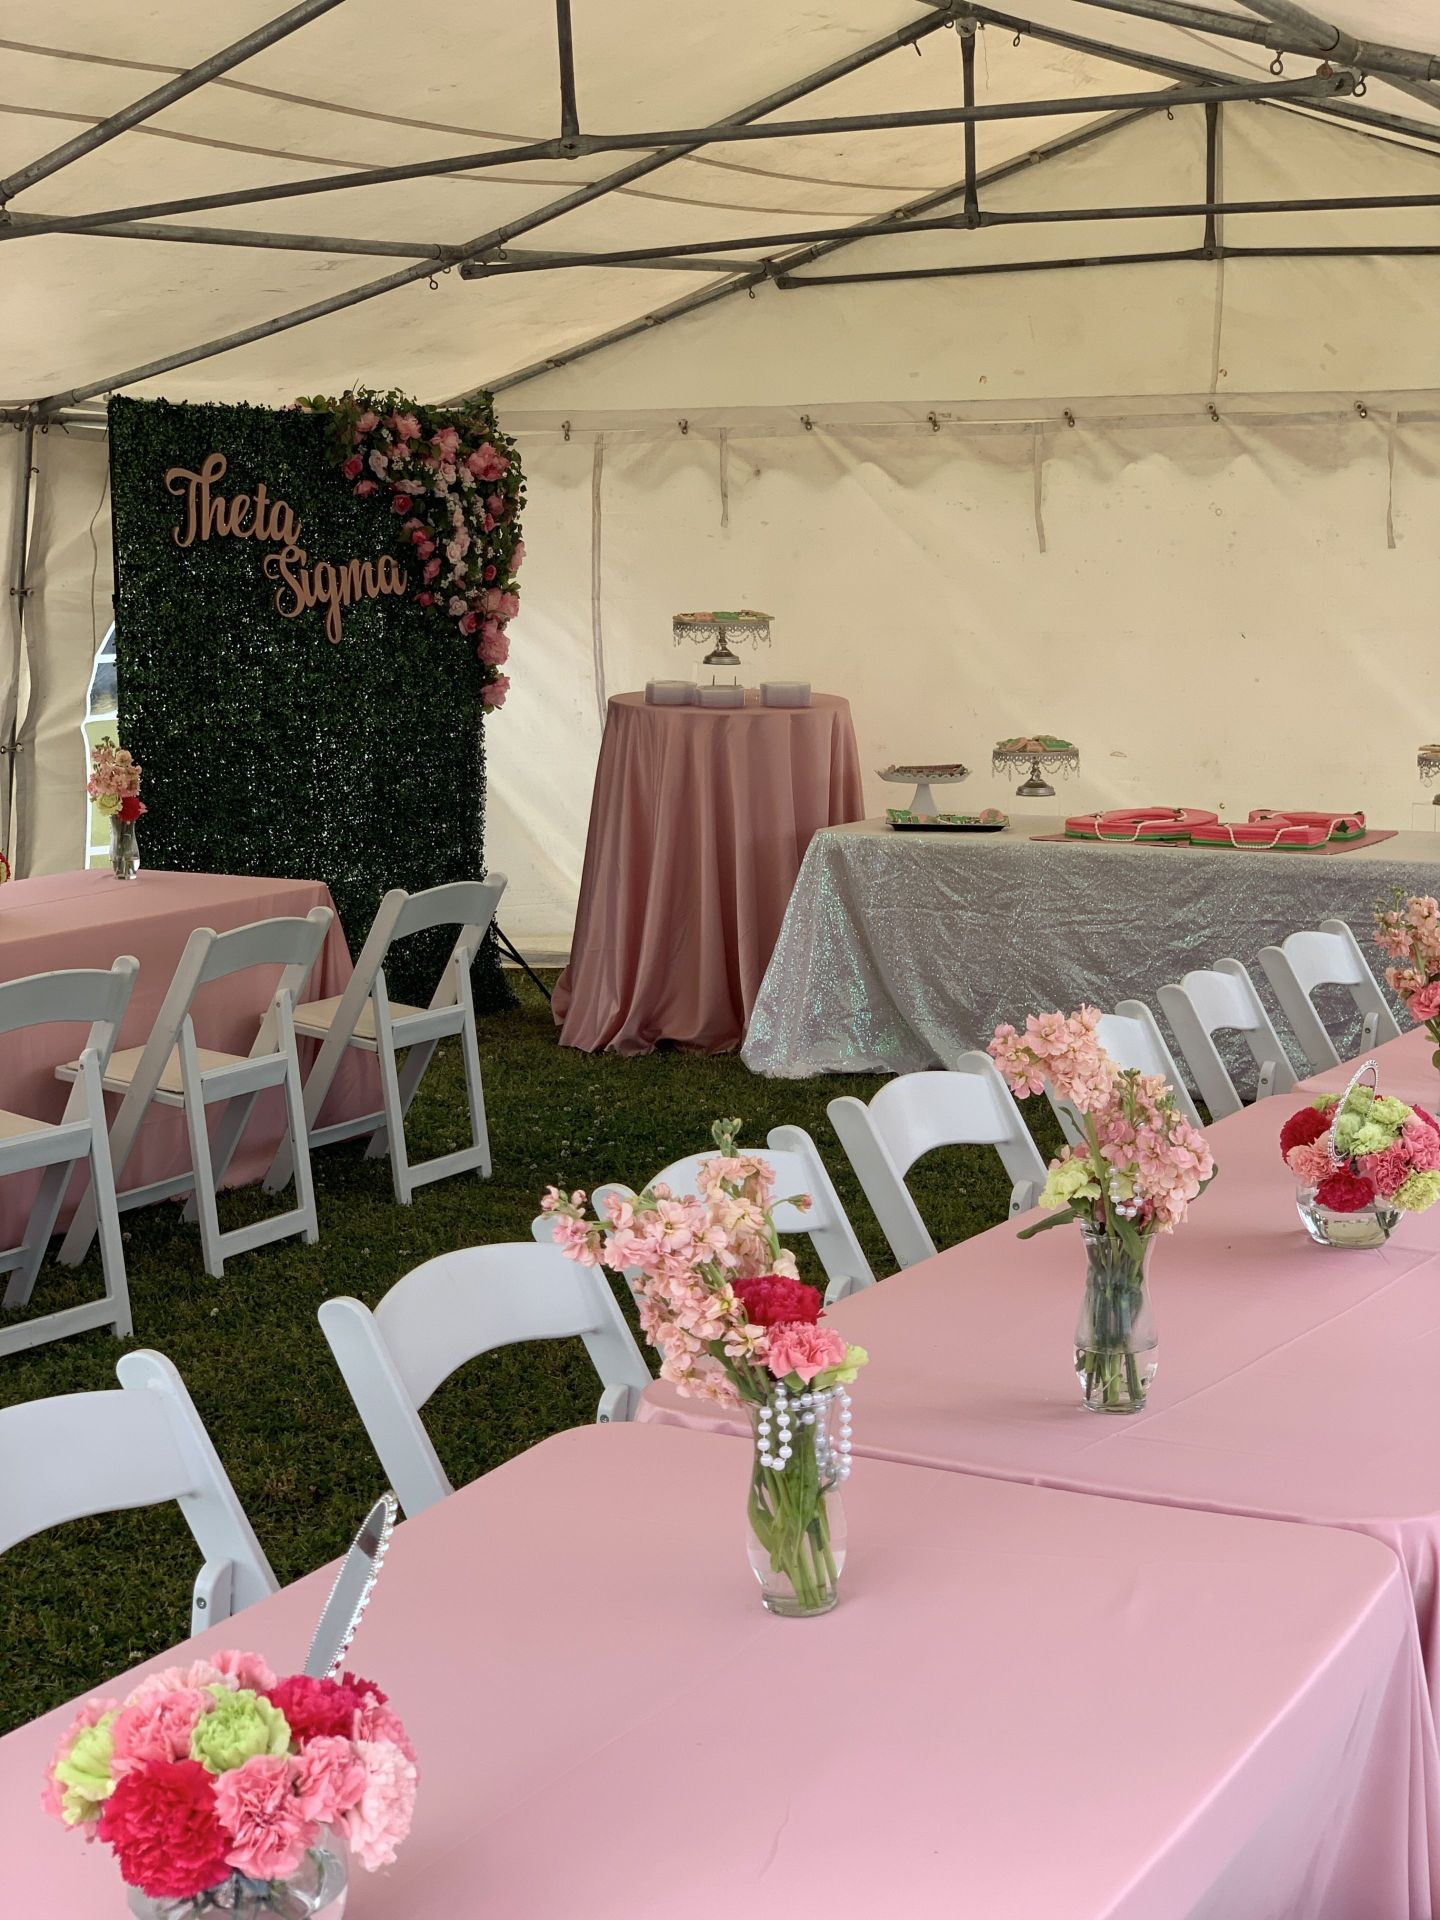 IMG_3031-1440x1920 Alpha Kappa Alpha Soiree - Pink & Green Outdoor Party Inspiration in Alabama